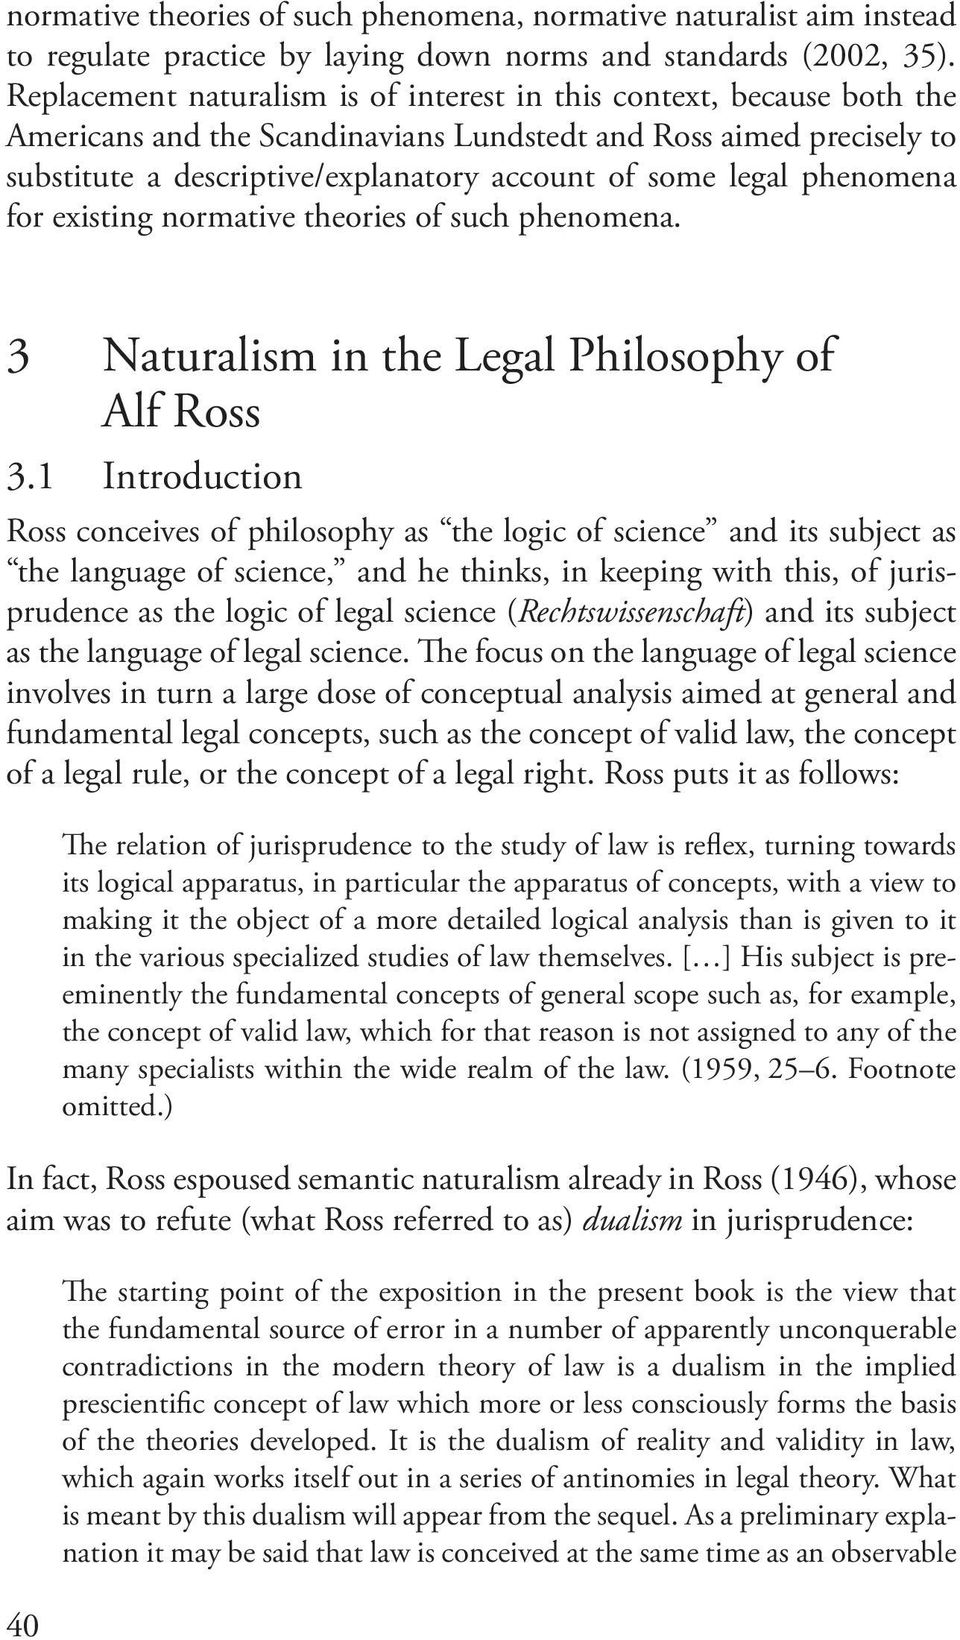 legal phenomena for existing normative theories of such phenomena. 3 Naturalism in the Legal Philosophy of Alf Ross 3.